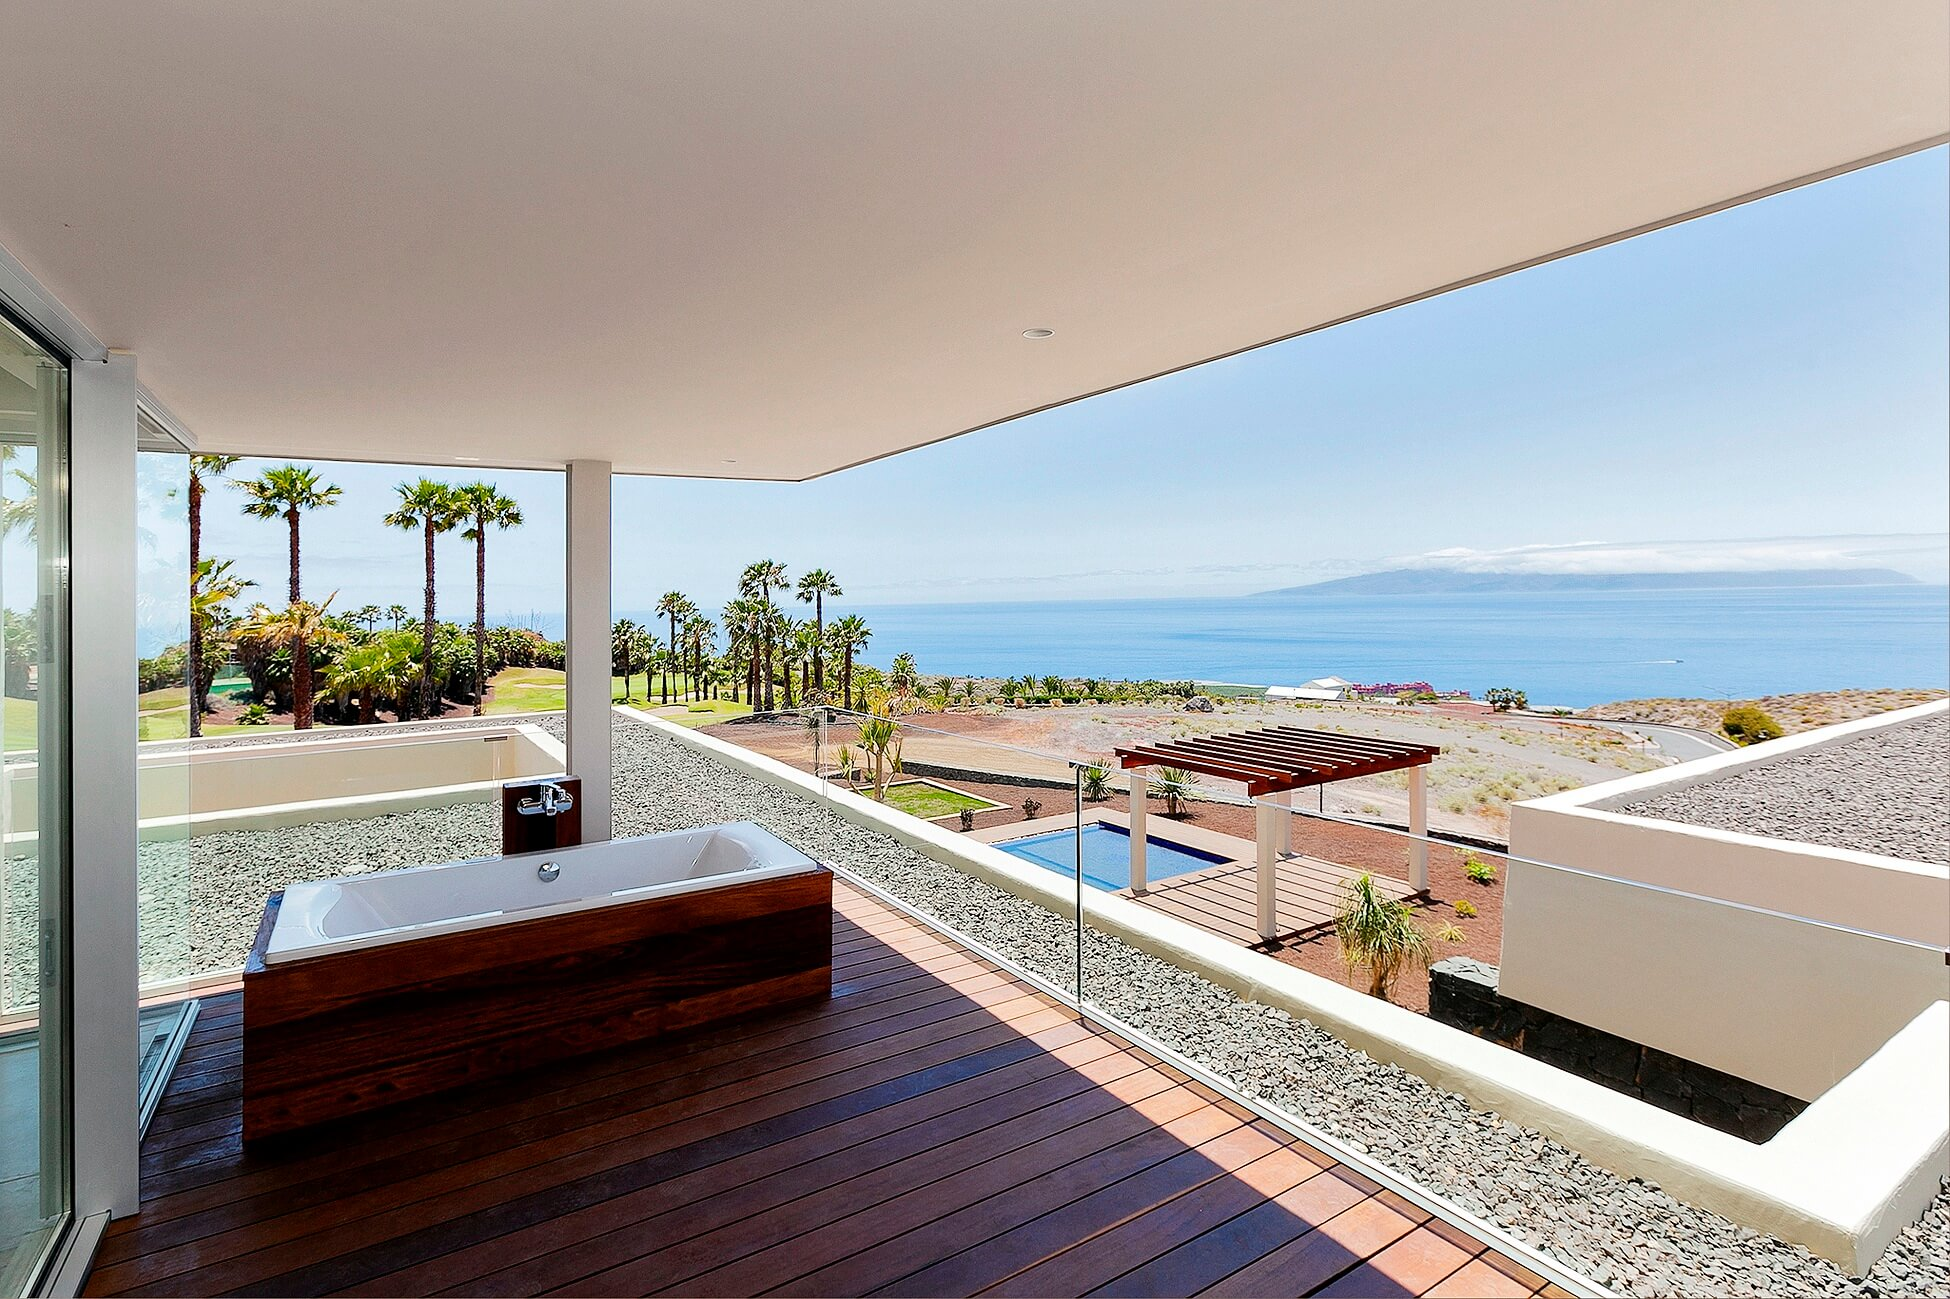 Luxury Property - Tenerife